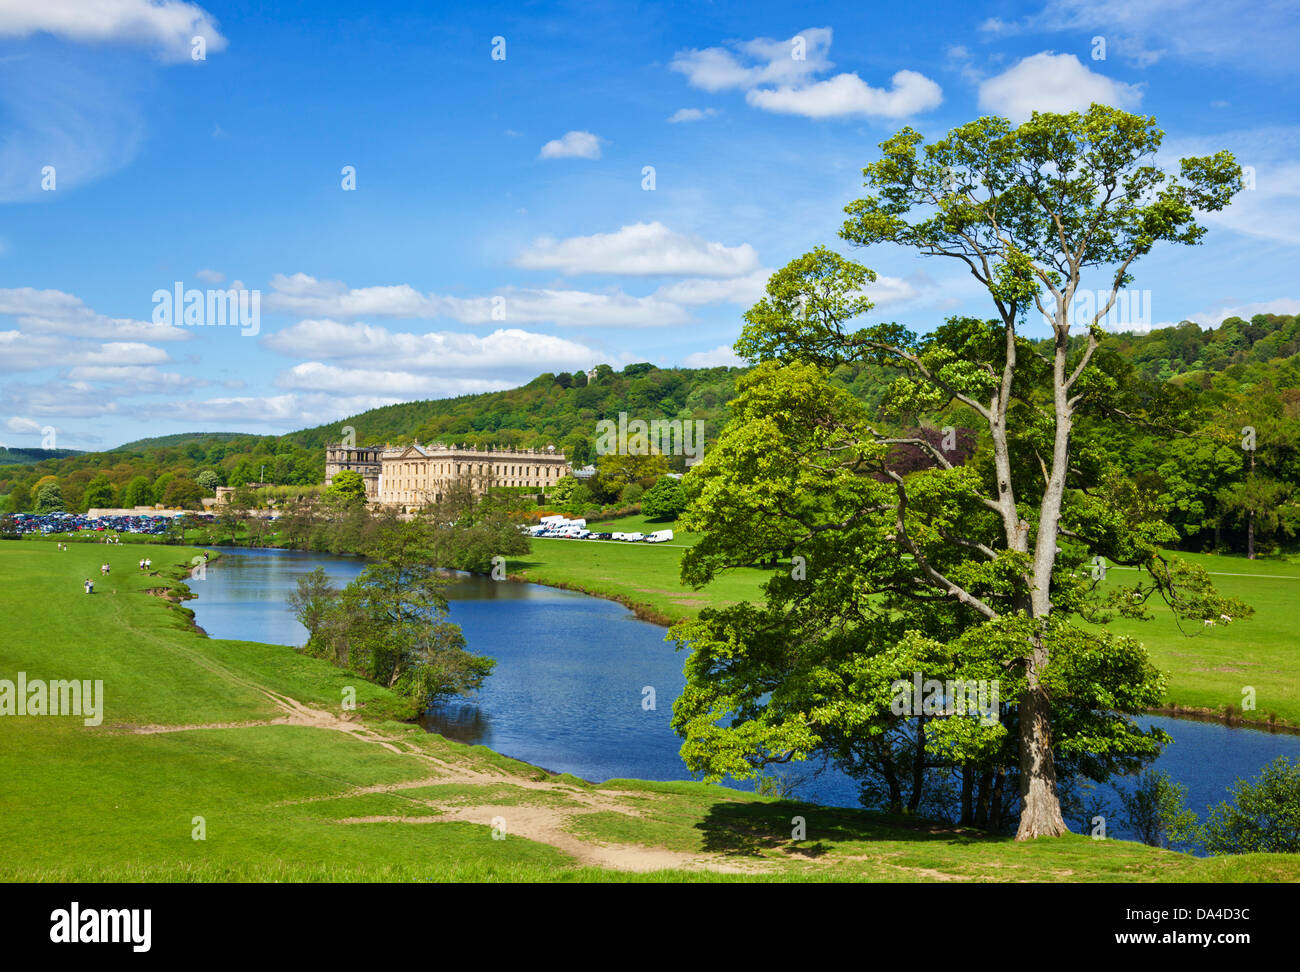 Chatsworth House park with river Derwent parkland and woods Derbyshire, England, UK, GB, EU, Europe - Stock Image